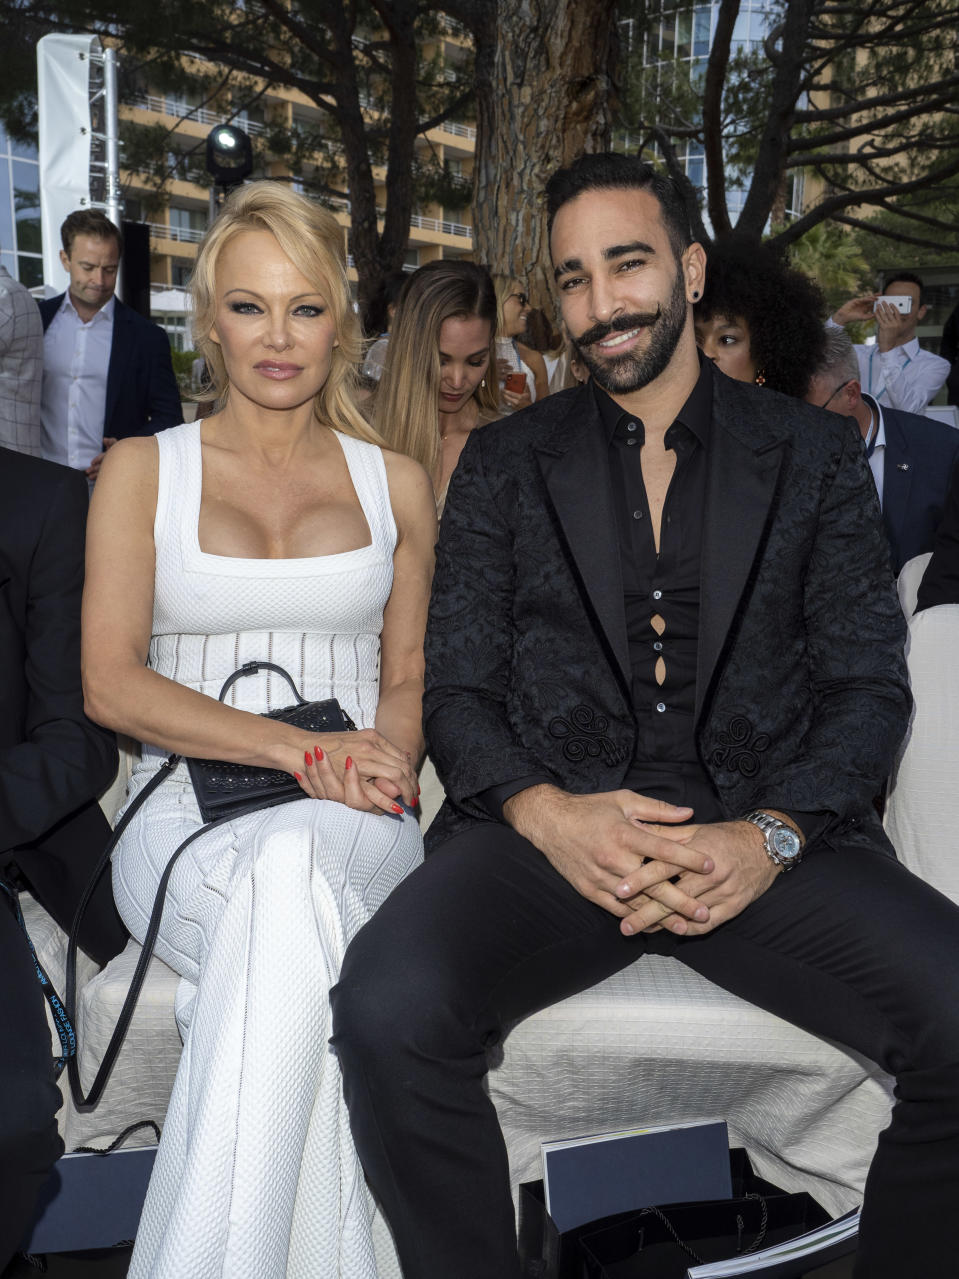 Pamela Anderson and Adil Rami at a fashion show in Monaco on May 24. (Photo: Arnold Jerocki/Getty Images)